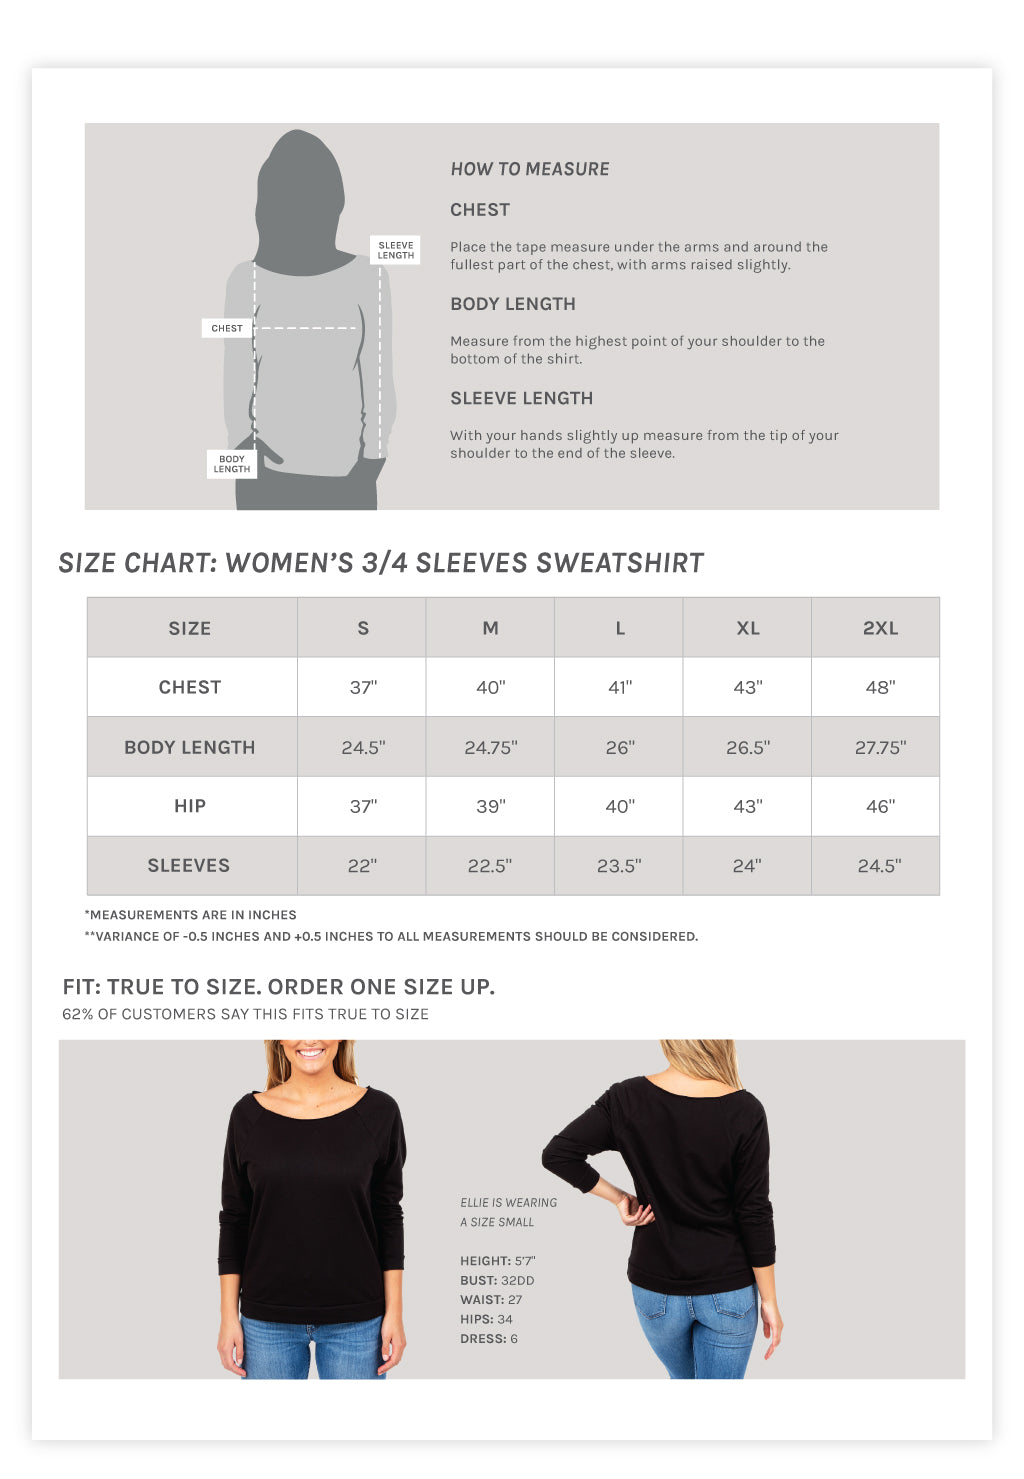 Women's 3/4 Sleeves Slouchy Sweatshirt Size Chart